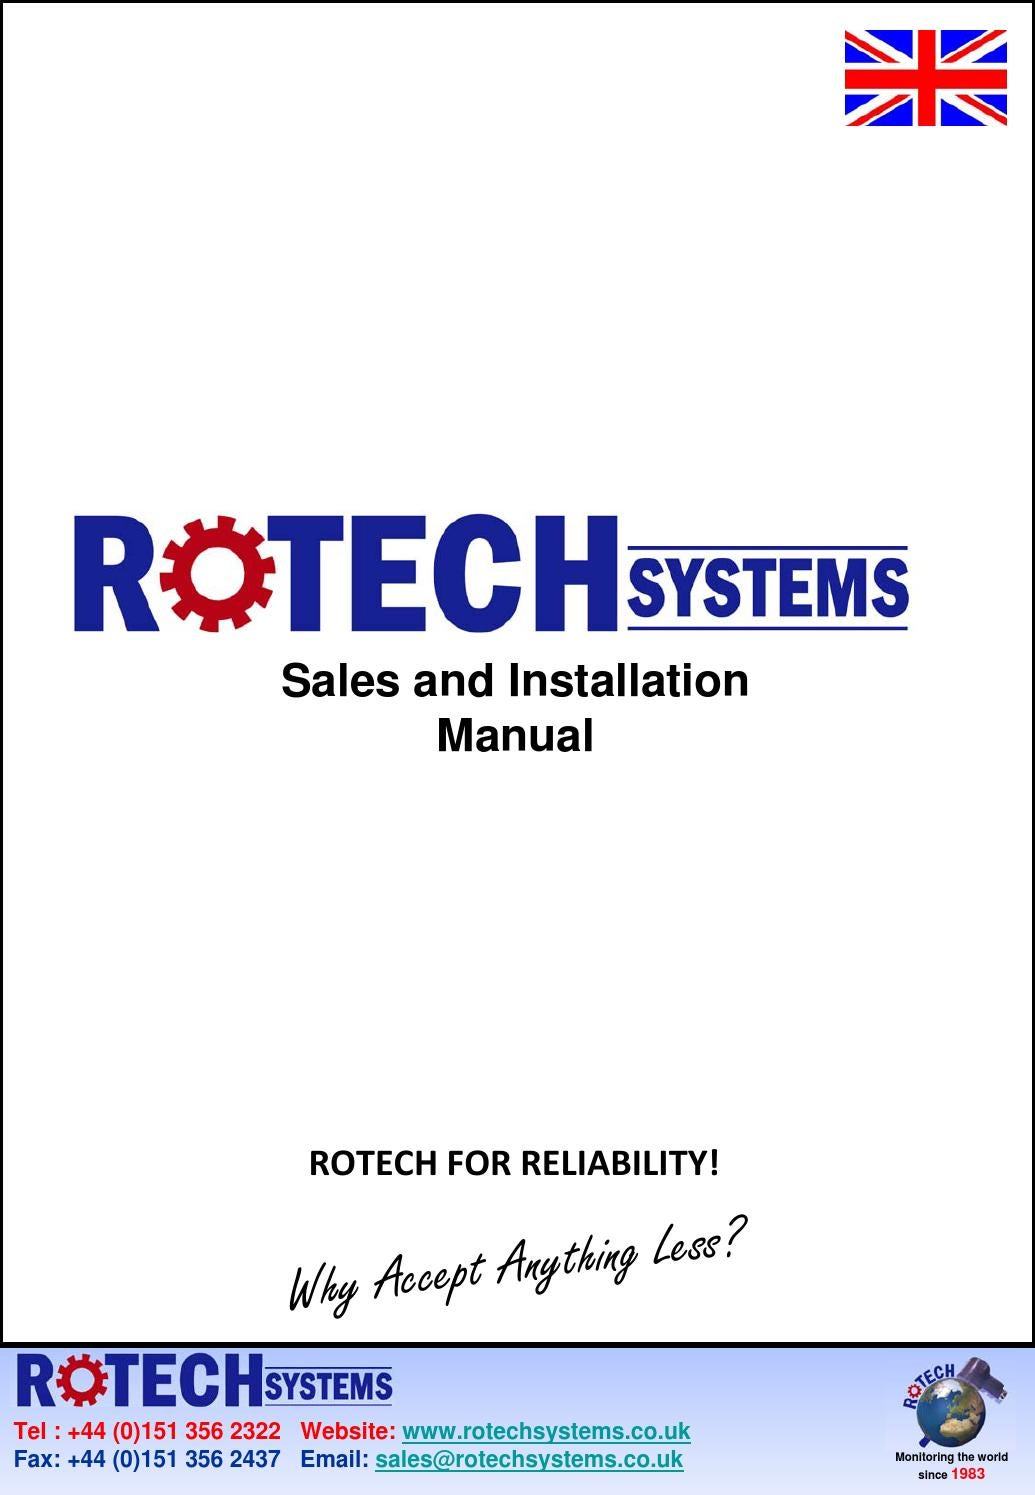 Rotech Systems Manual By Process Industry Informer Issuu Wire Configurations Are 2wire 3wire Npn Pnp 4wire And